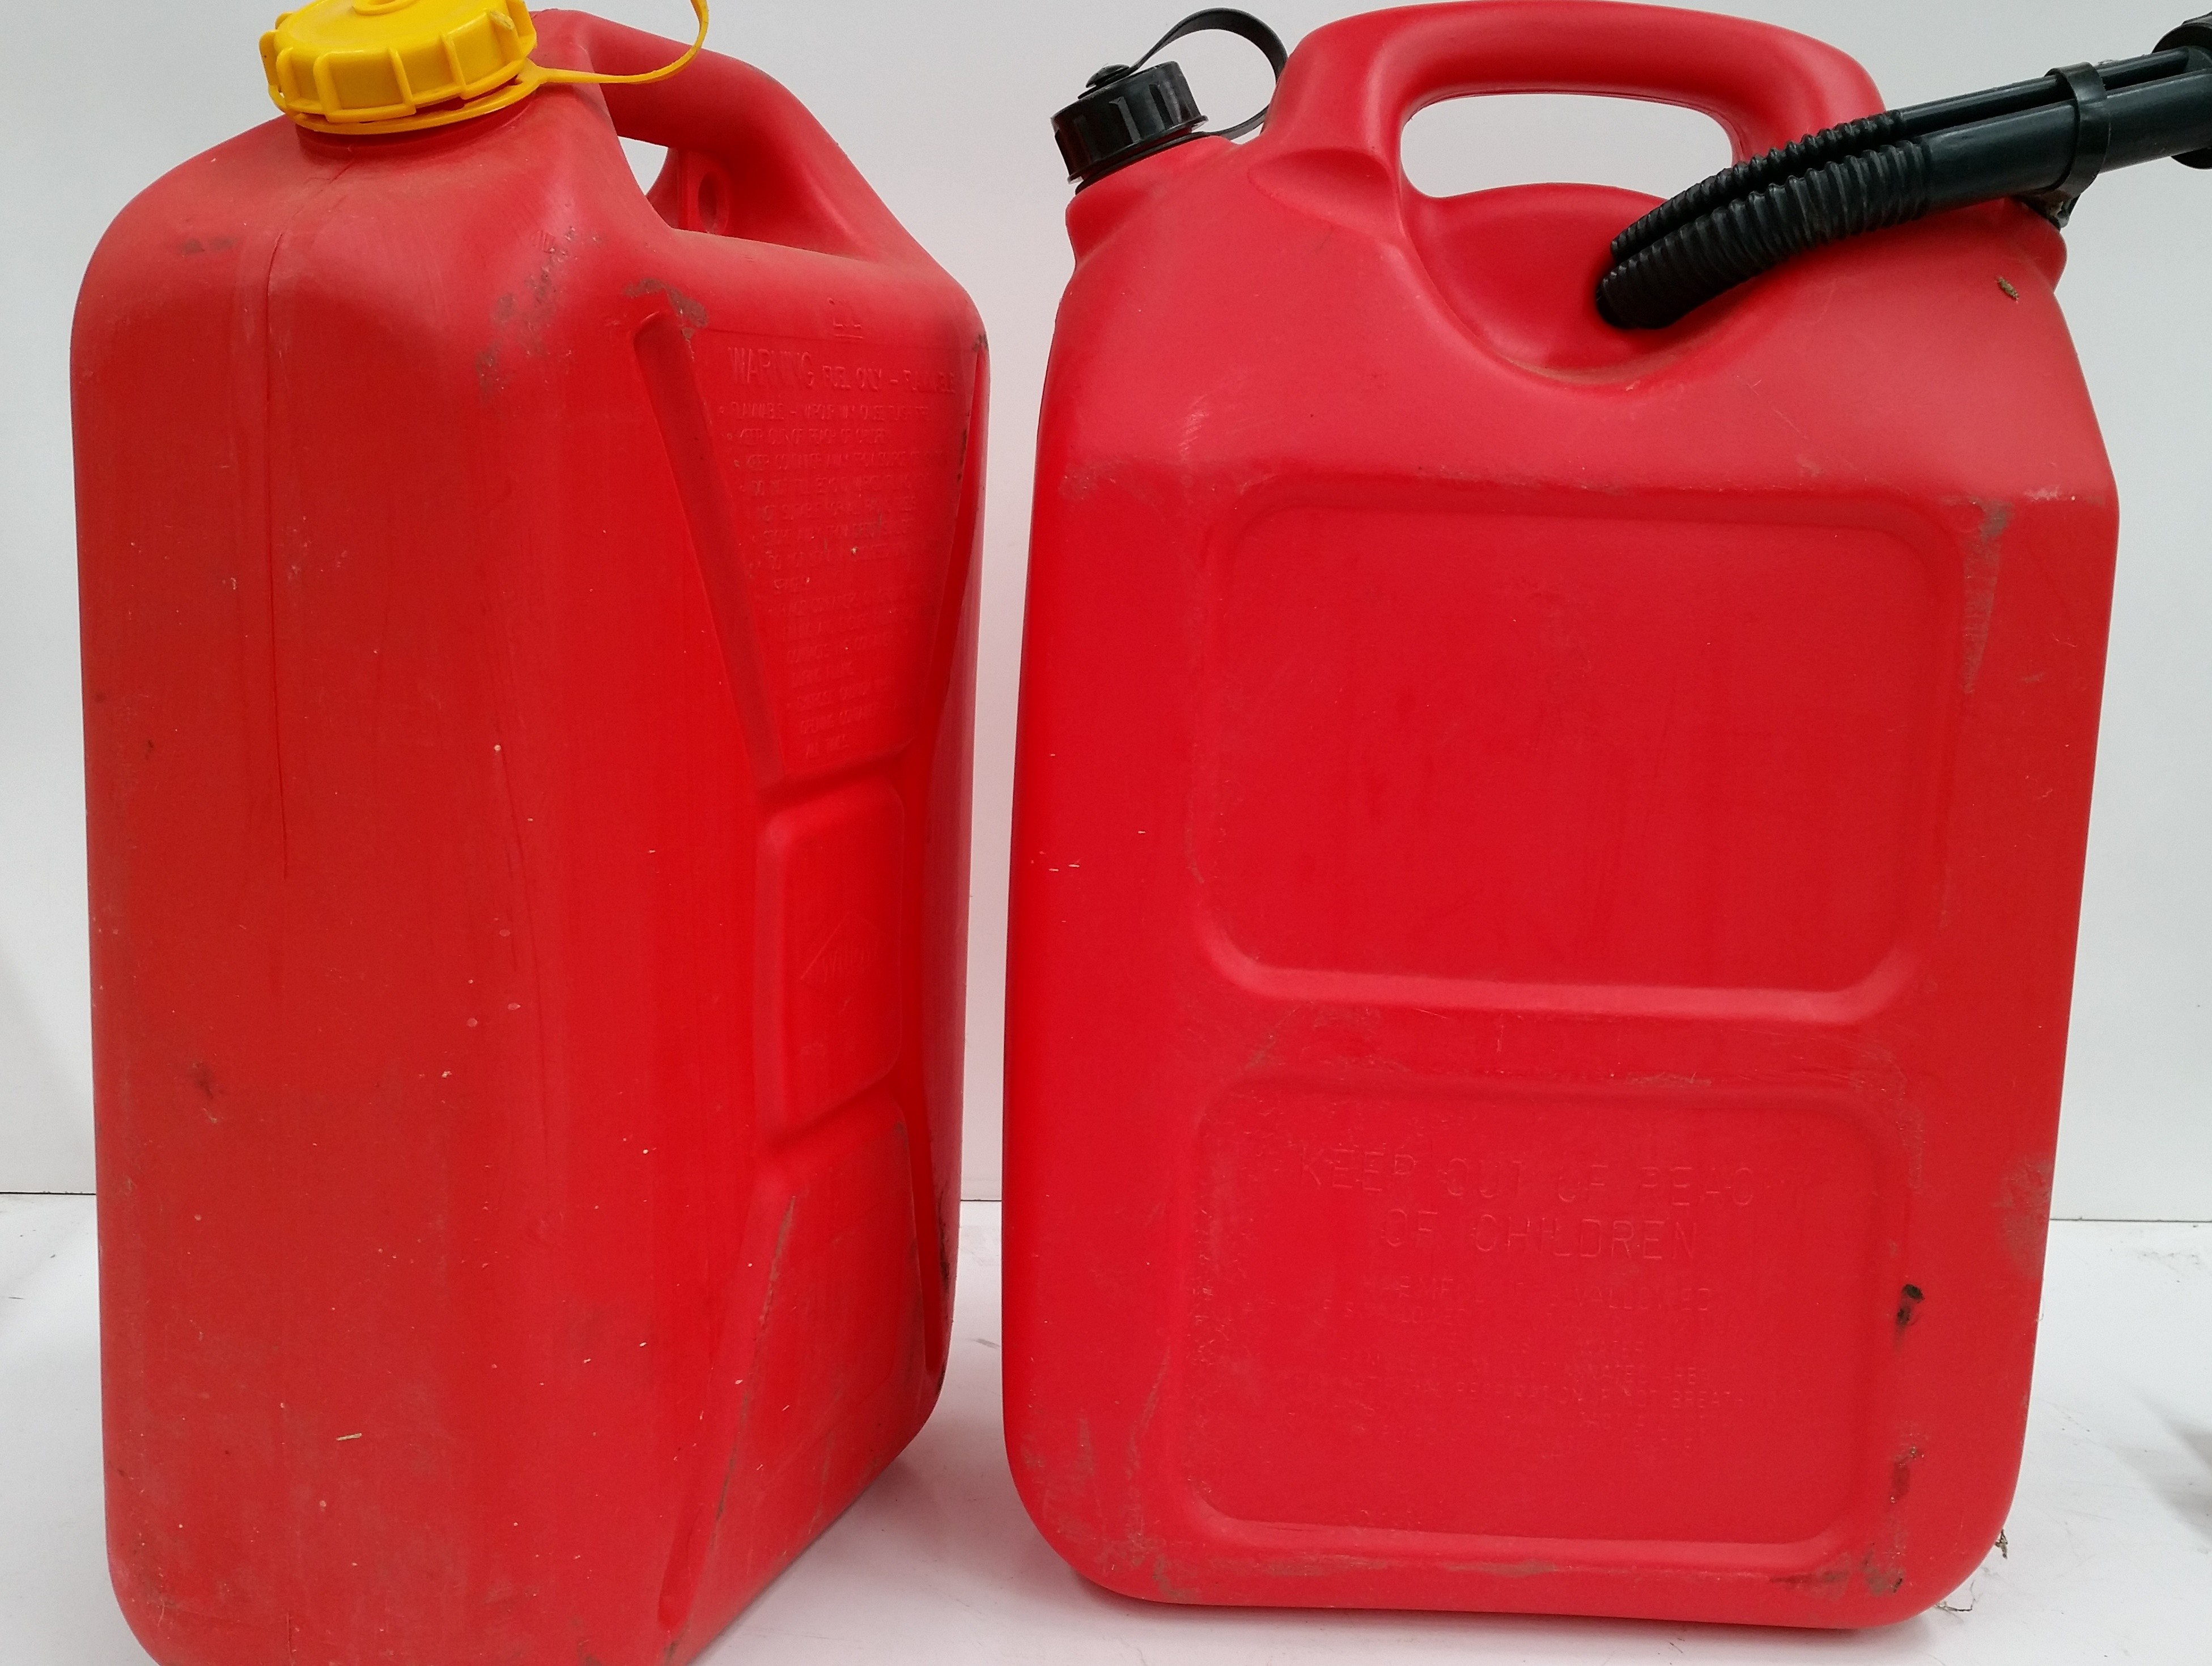 Plastic Gas Cans >> 20 Lit Plastic Fuel Jerry Cans Lot Of 2